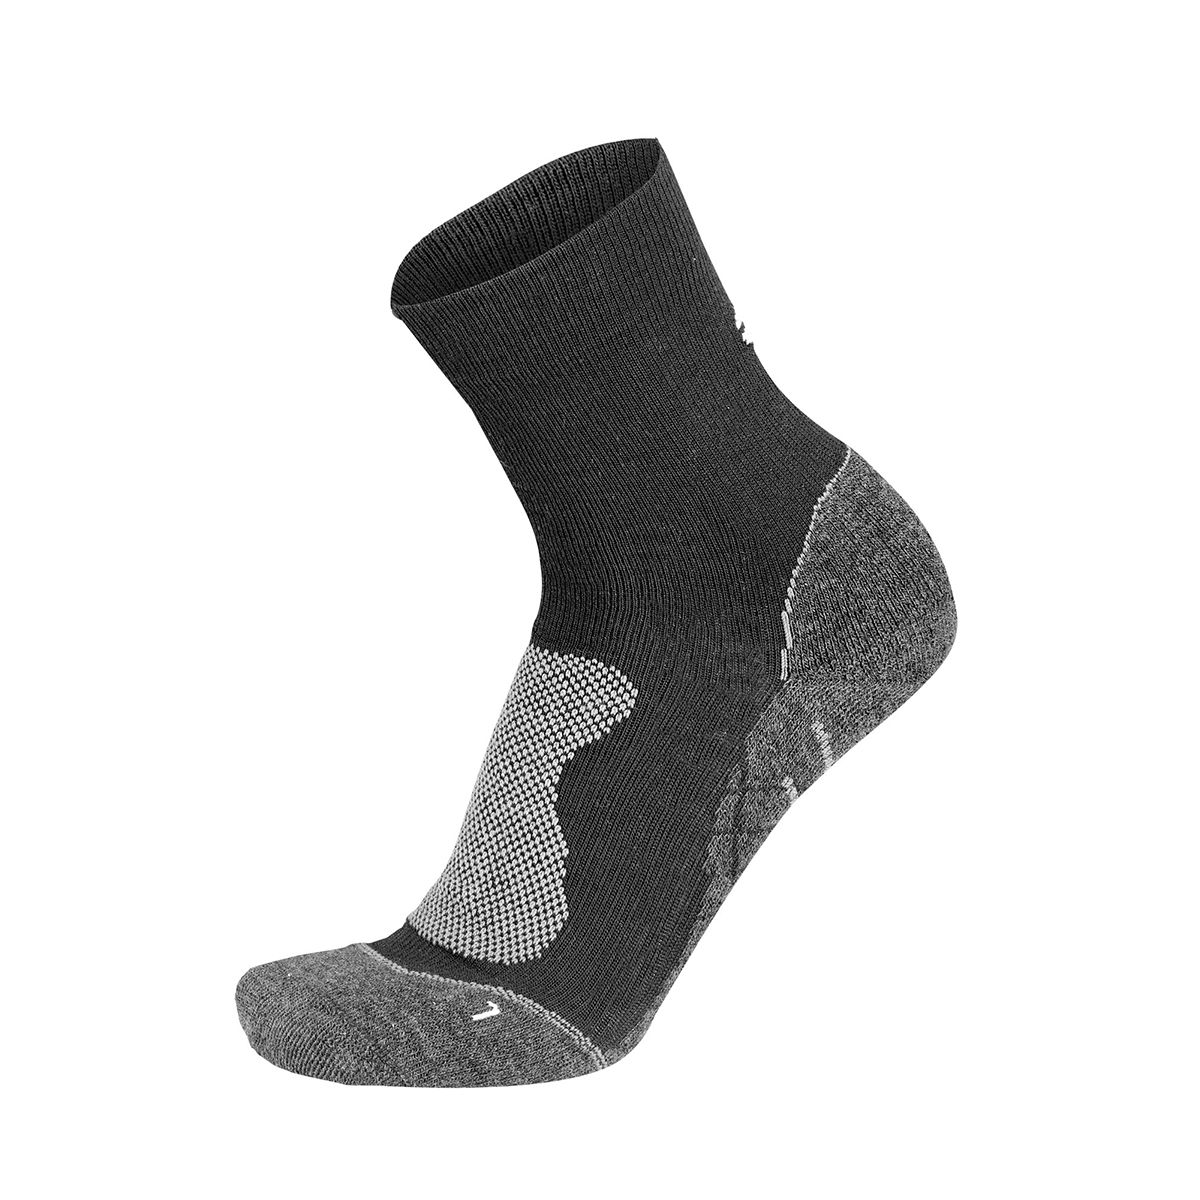 ROSE WINTER PLUS II cycling socks | Strømper